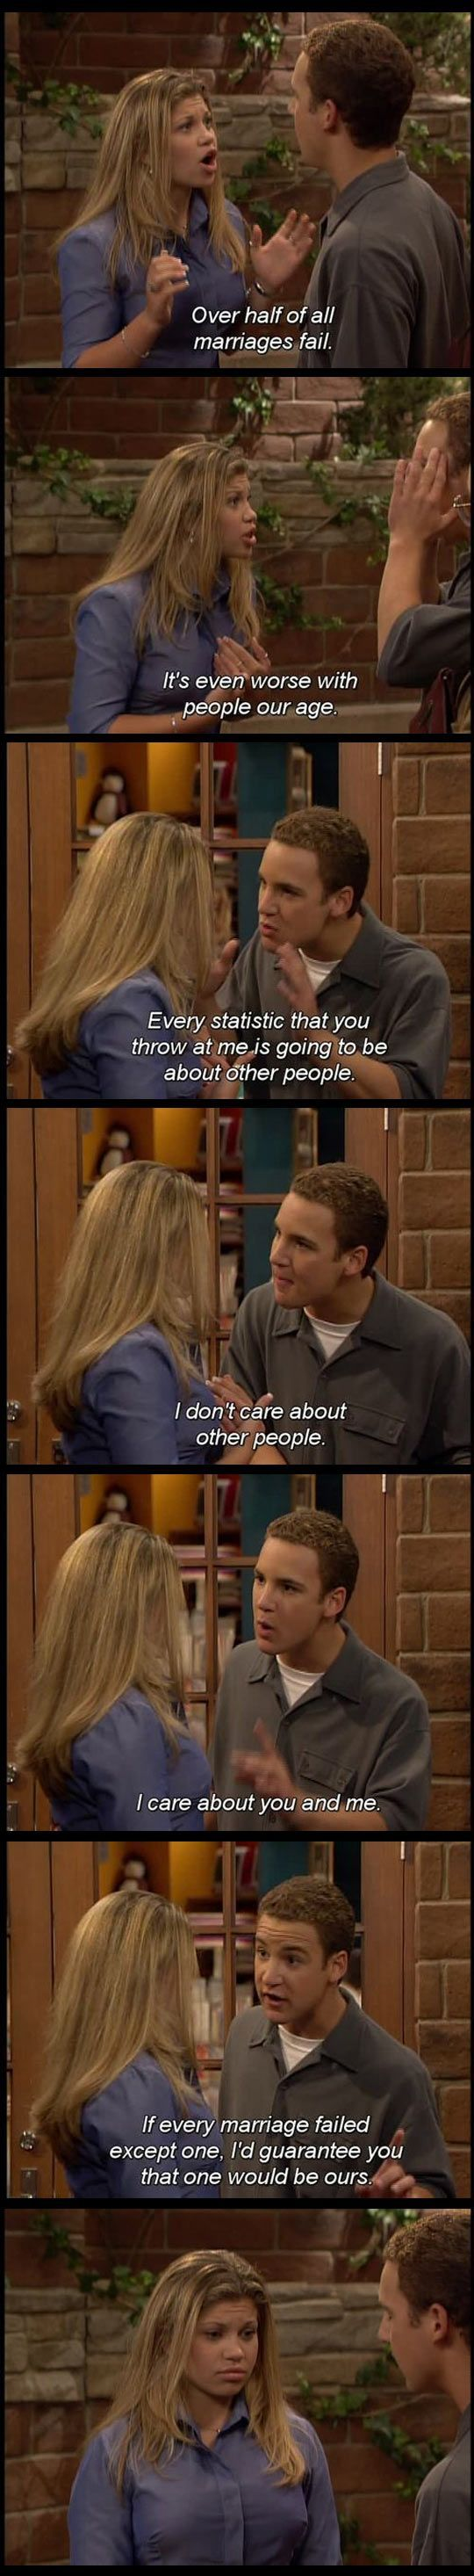 When I first saw this show I was at an eye doctor's appointment and I enjoyed it so much I didn't want to leave. Well this was my Boy Meets World episode and ever since then I've loved it